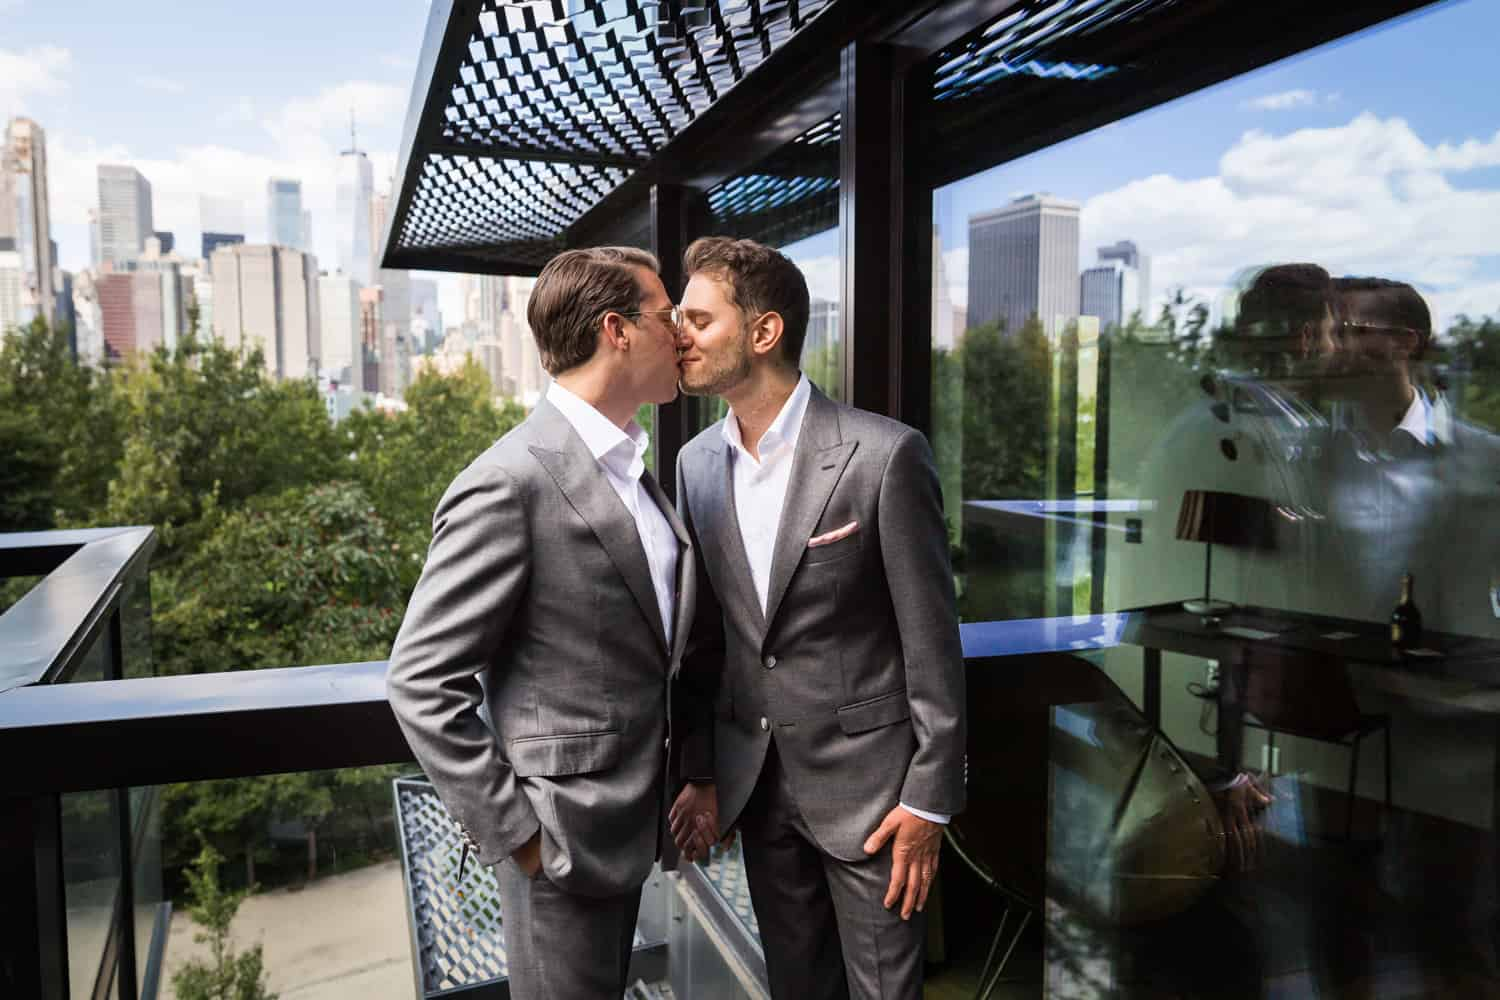 Greenpoint Loft wedding photos of two grooms kissing on hotel terrace